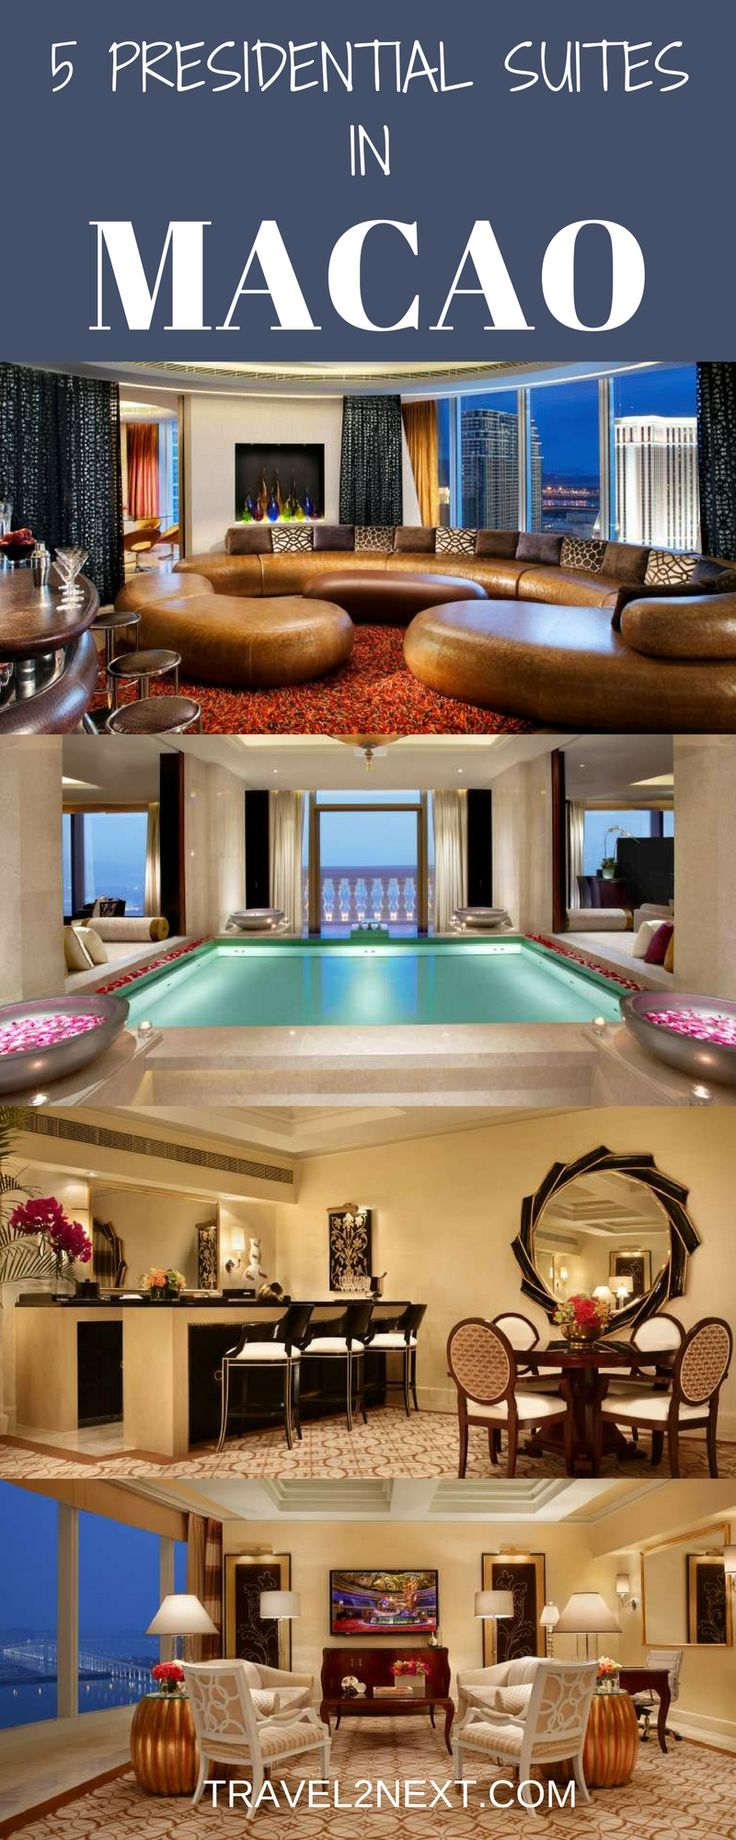 5 Presidential Suites in Macau. When Maria Carey, Leonardo DiCaprio, Robert De Niro, and Martin Scorsese pitched up for the launch of the US$4.5 billion Studio City in Macau in October 2015